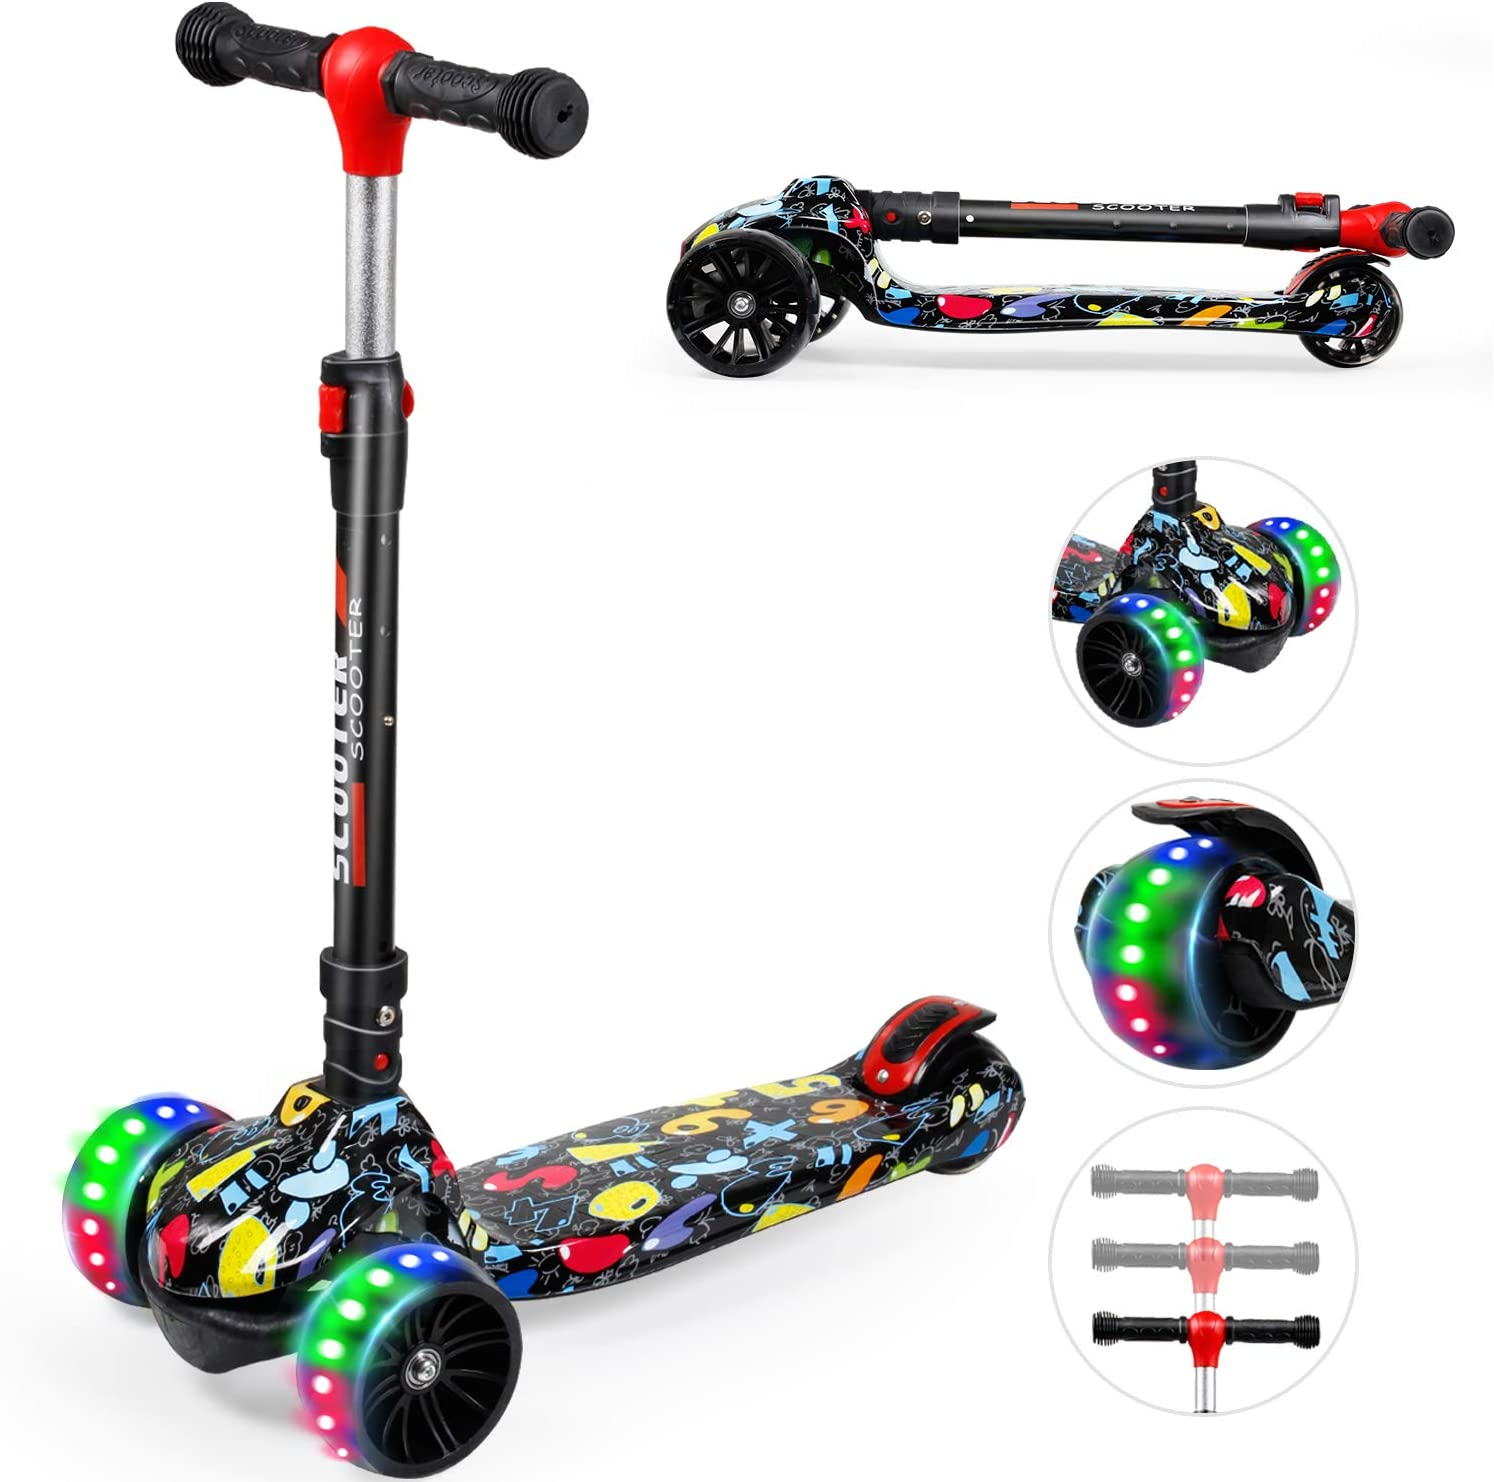 Kick Scooter for Kids 2-8 Year Old boy /& Girl YHR Toddler Scooter with 3 Wheel Extra-Wide PU LED Flashing Wheels 3 Wheel Kids Scooter Have 3 Adjustable Heights